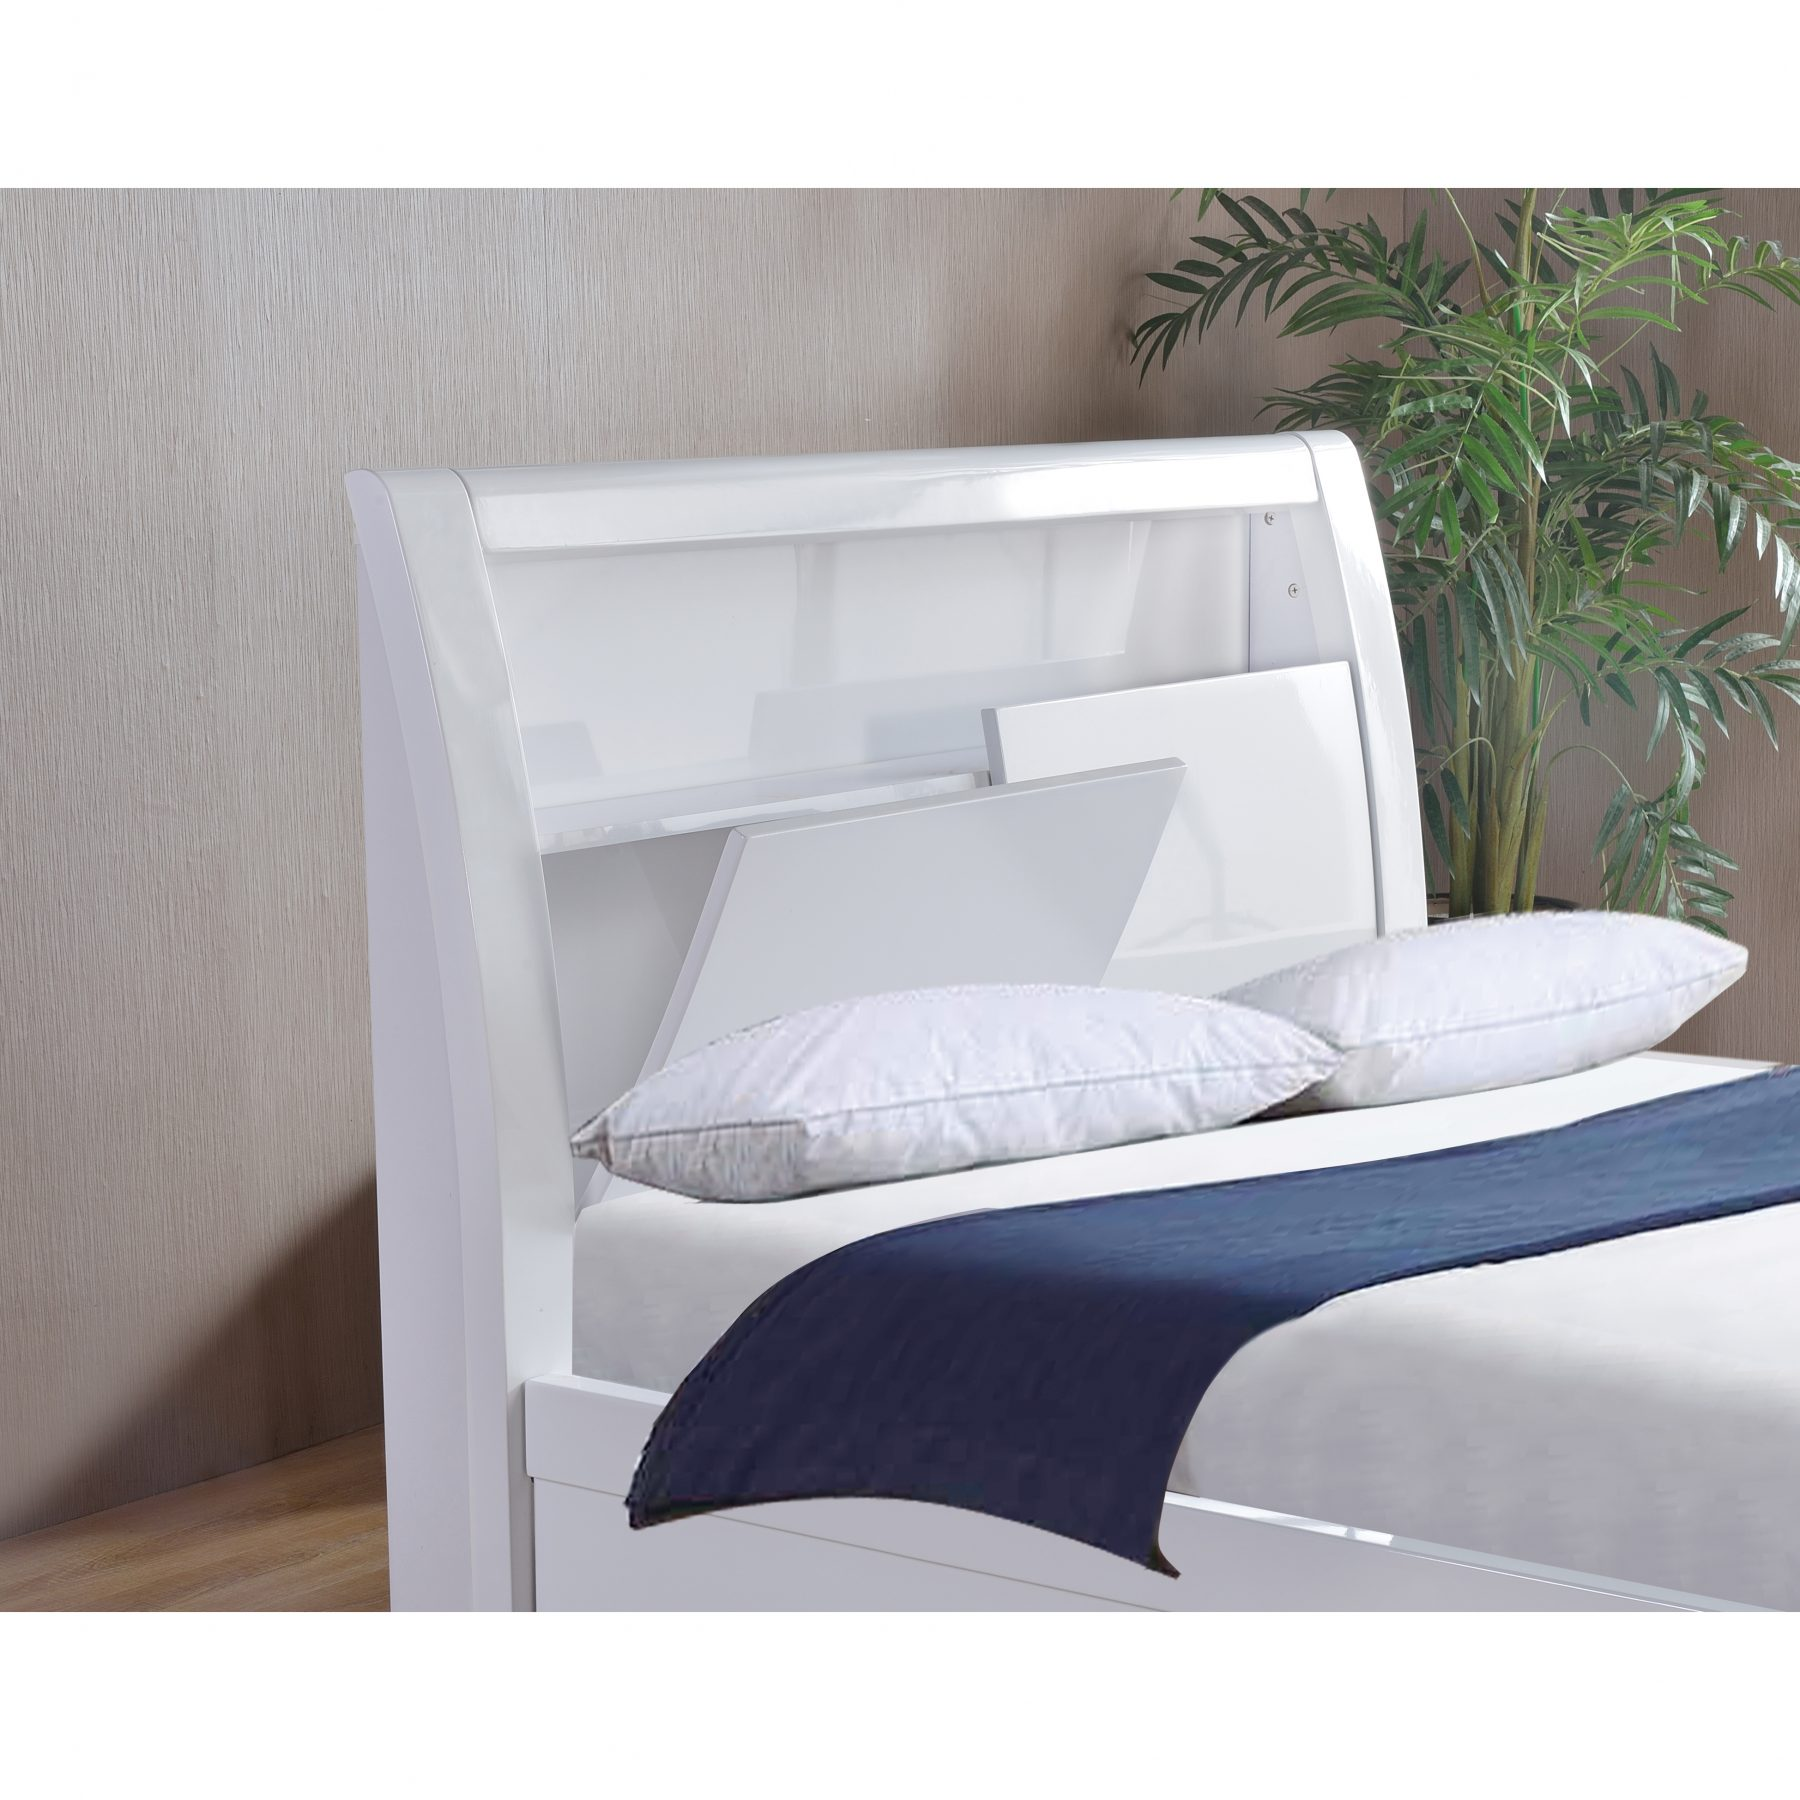 Tolga White High Gloss Storage Bed Frame Storage Beds Fads